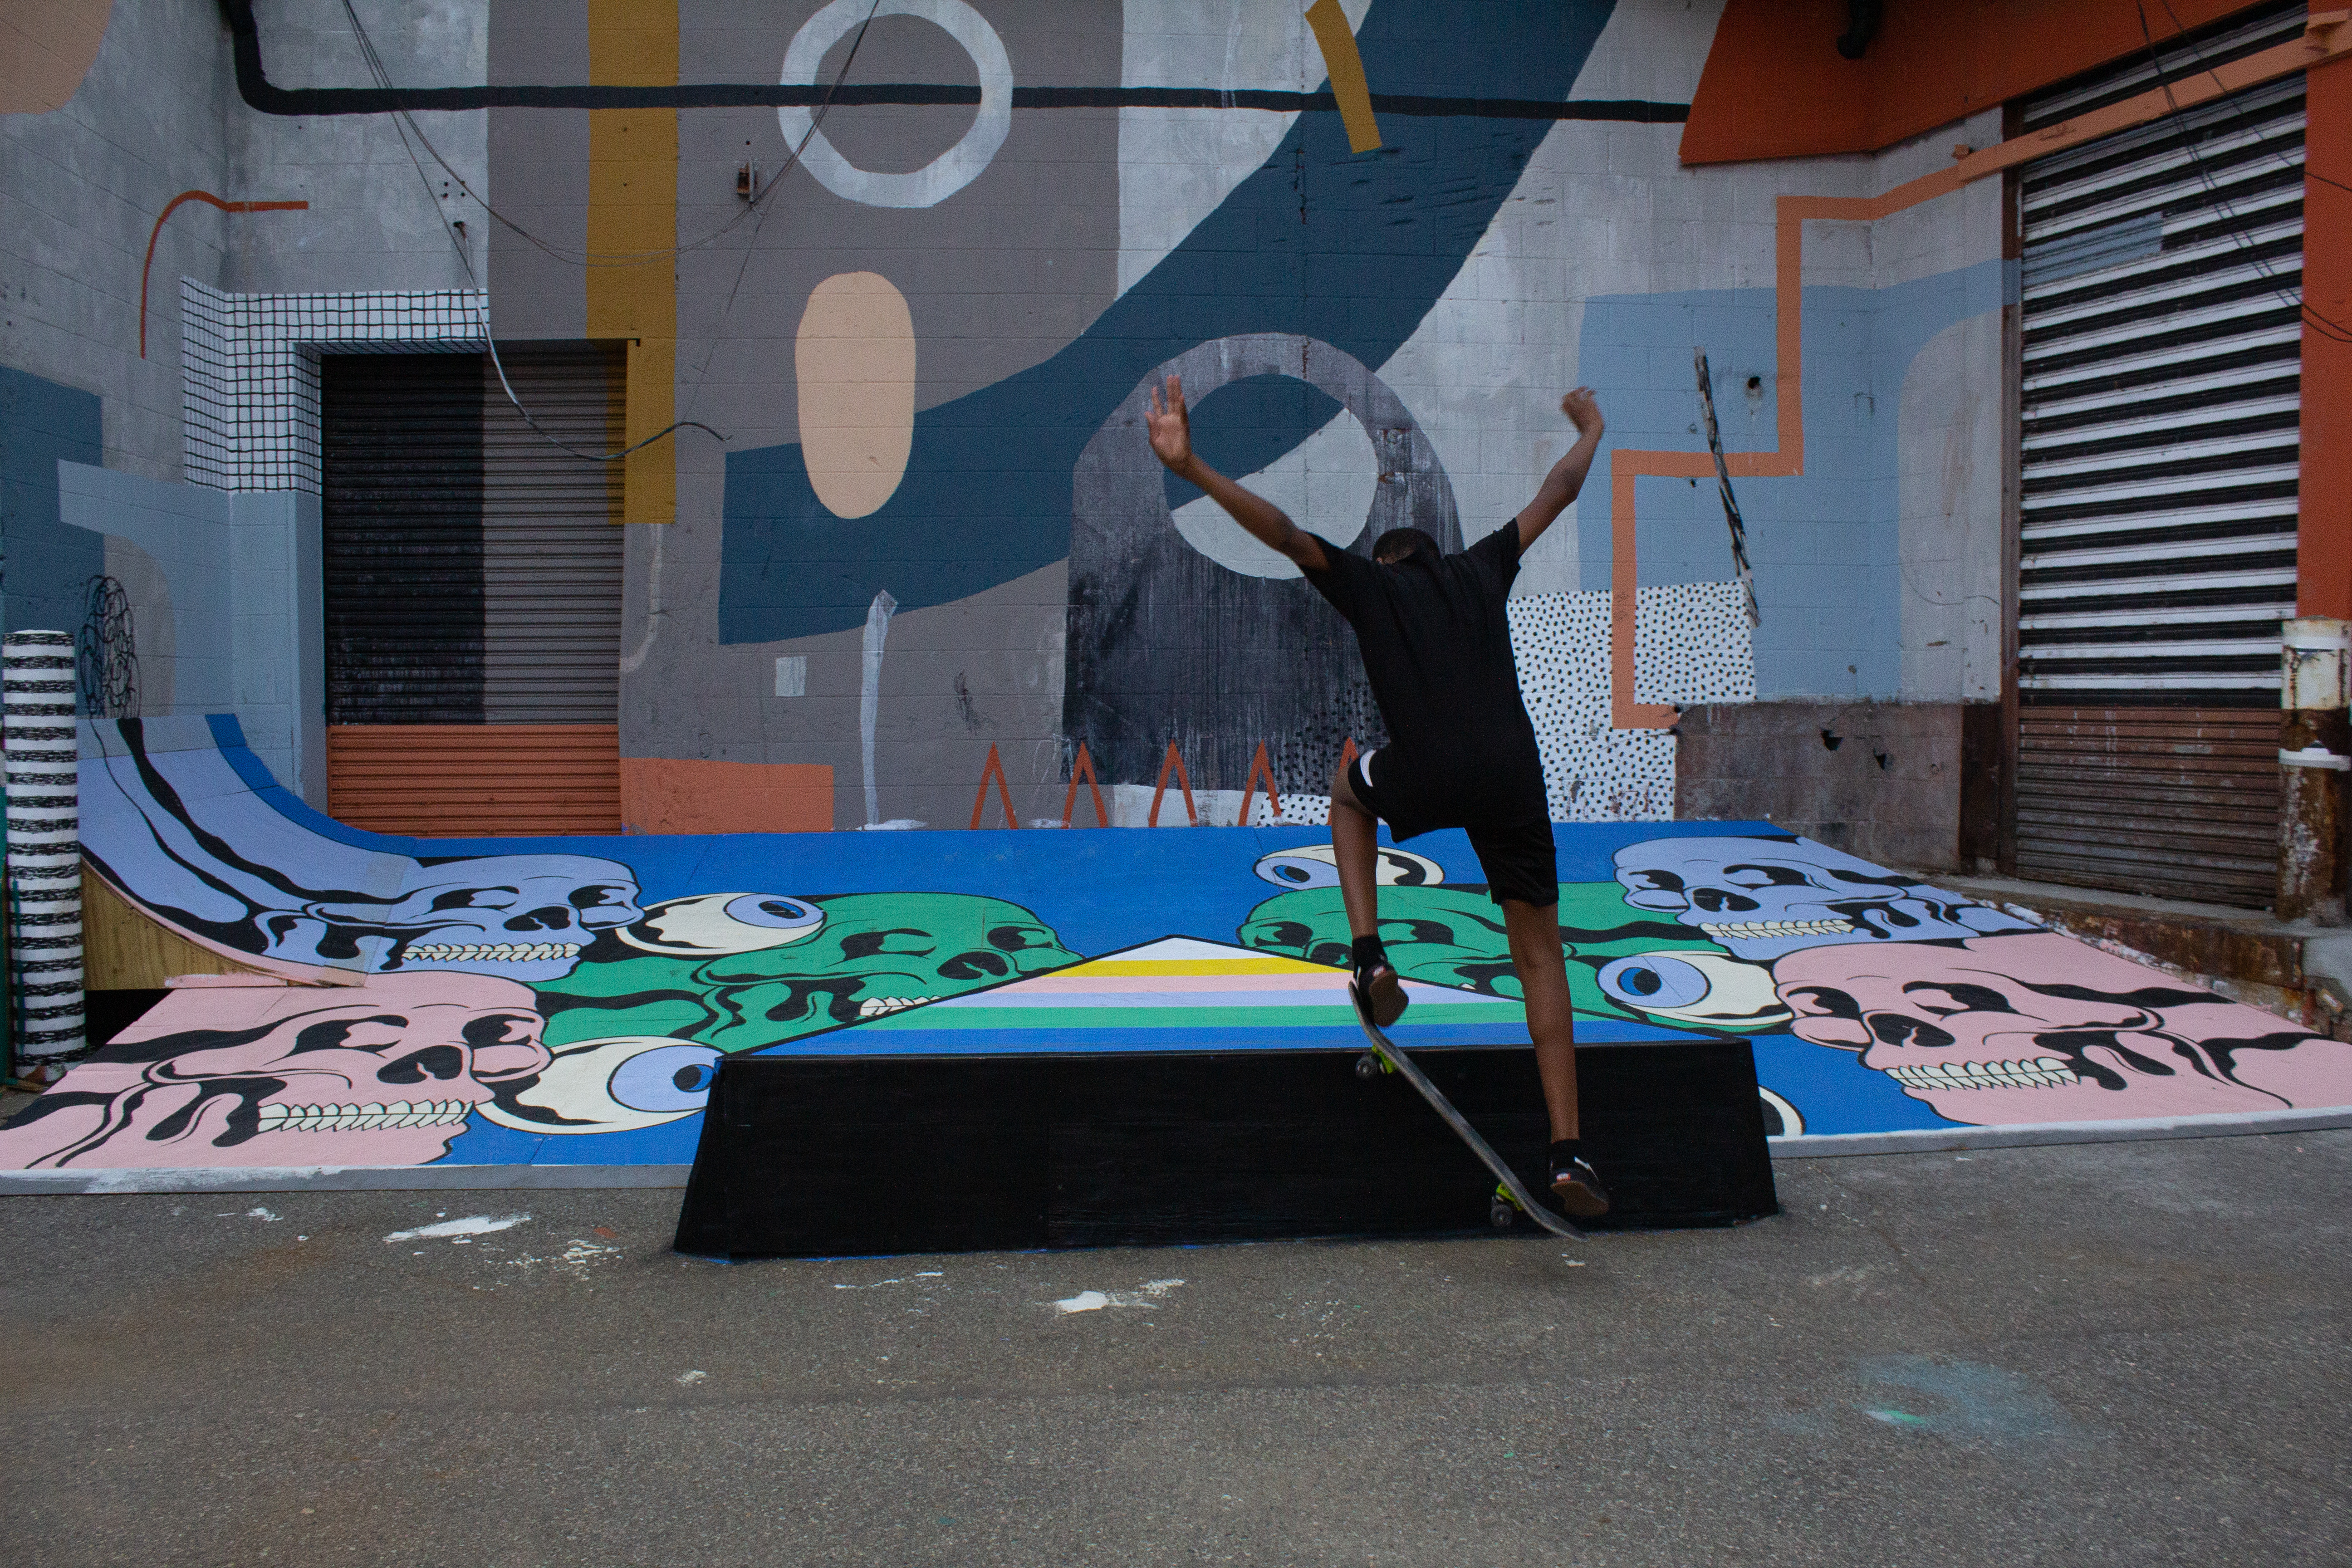 skate park A younger skater lands a flip in front of a mural in the Skate Alley.